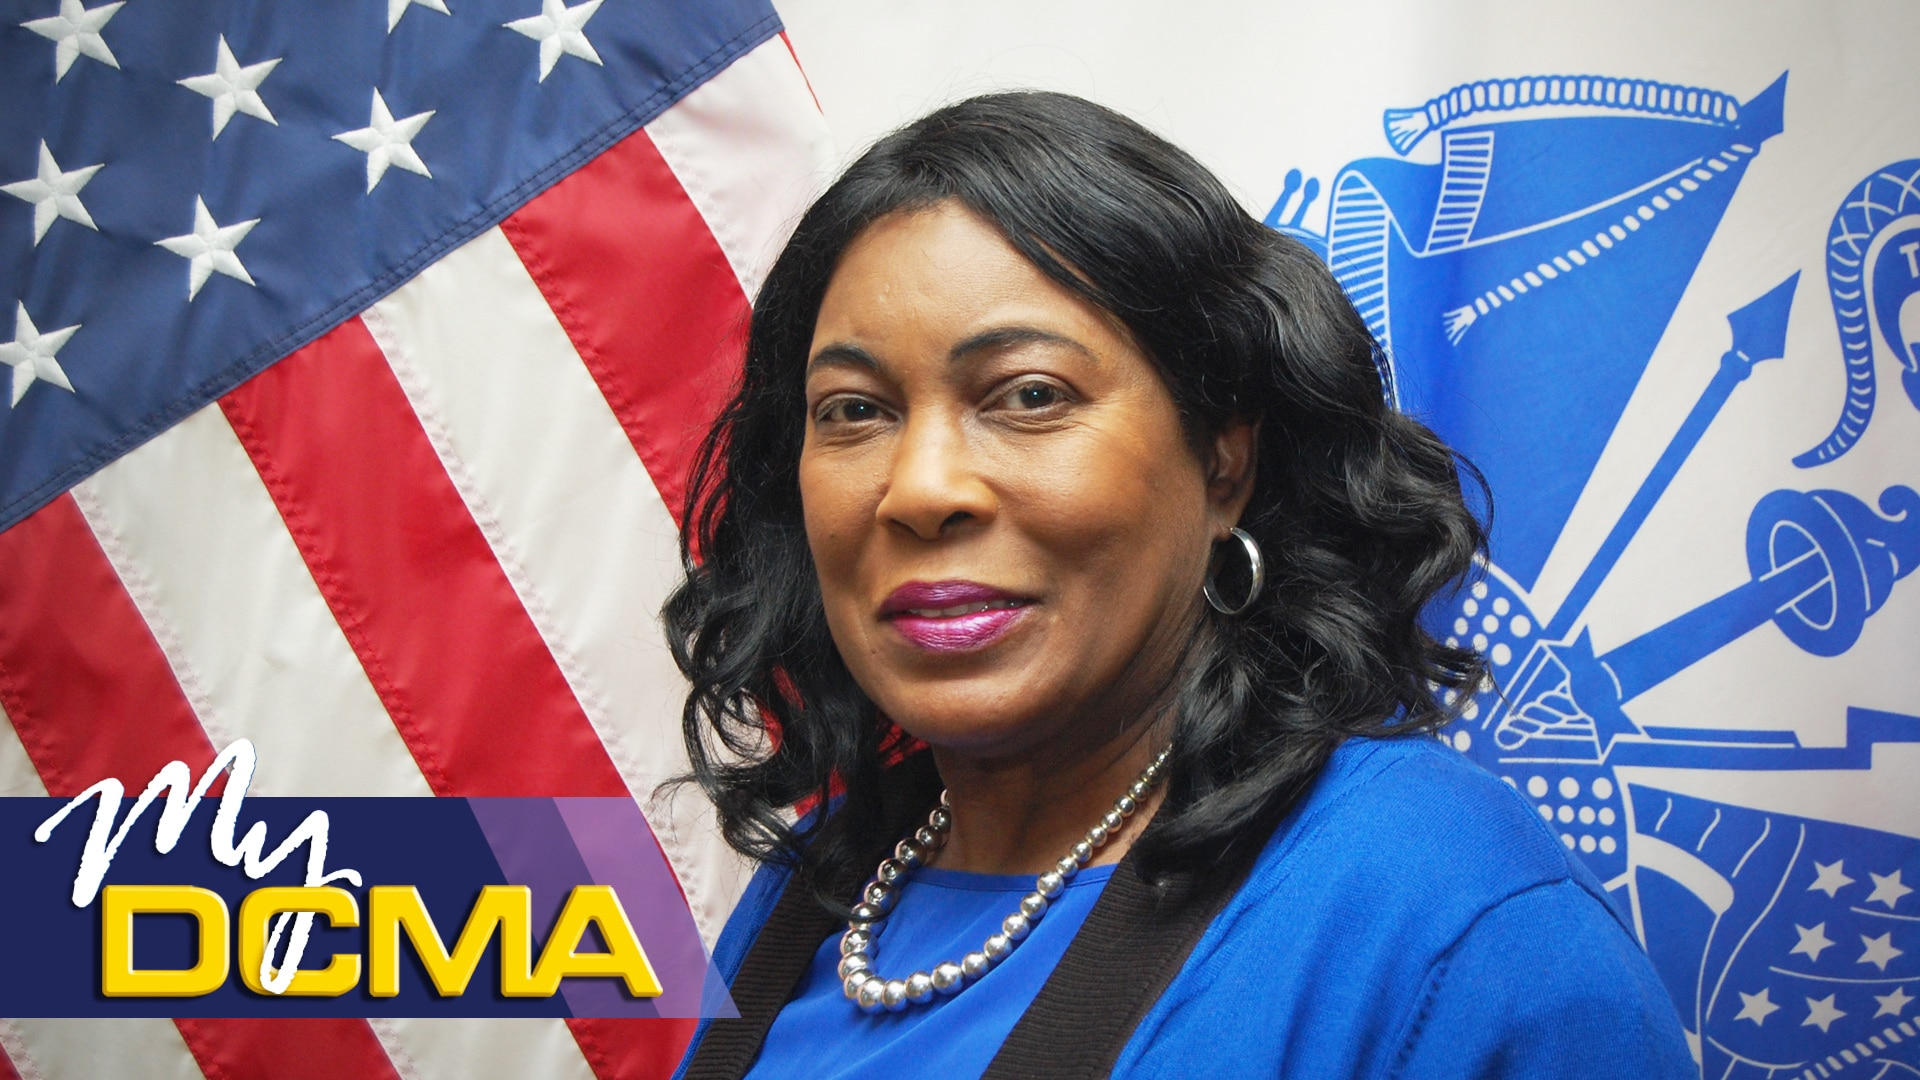 Picture of a smiling lady wearing a blue blouse standing in front of the American flag